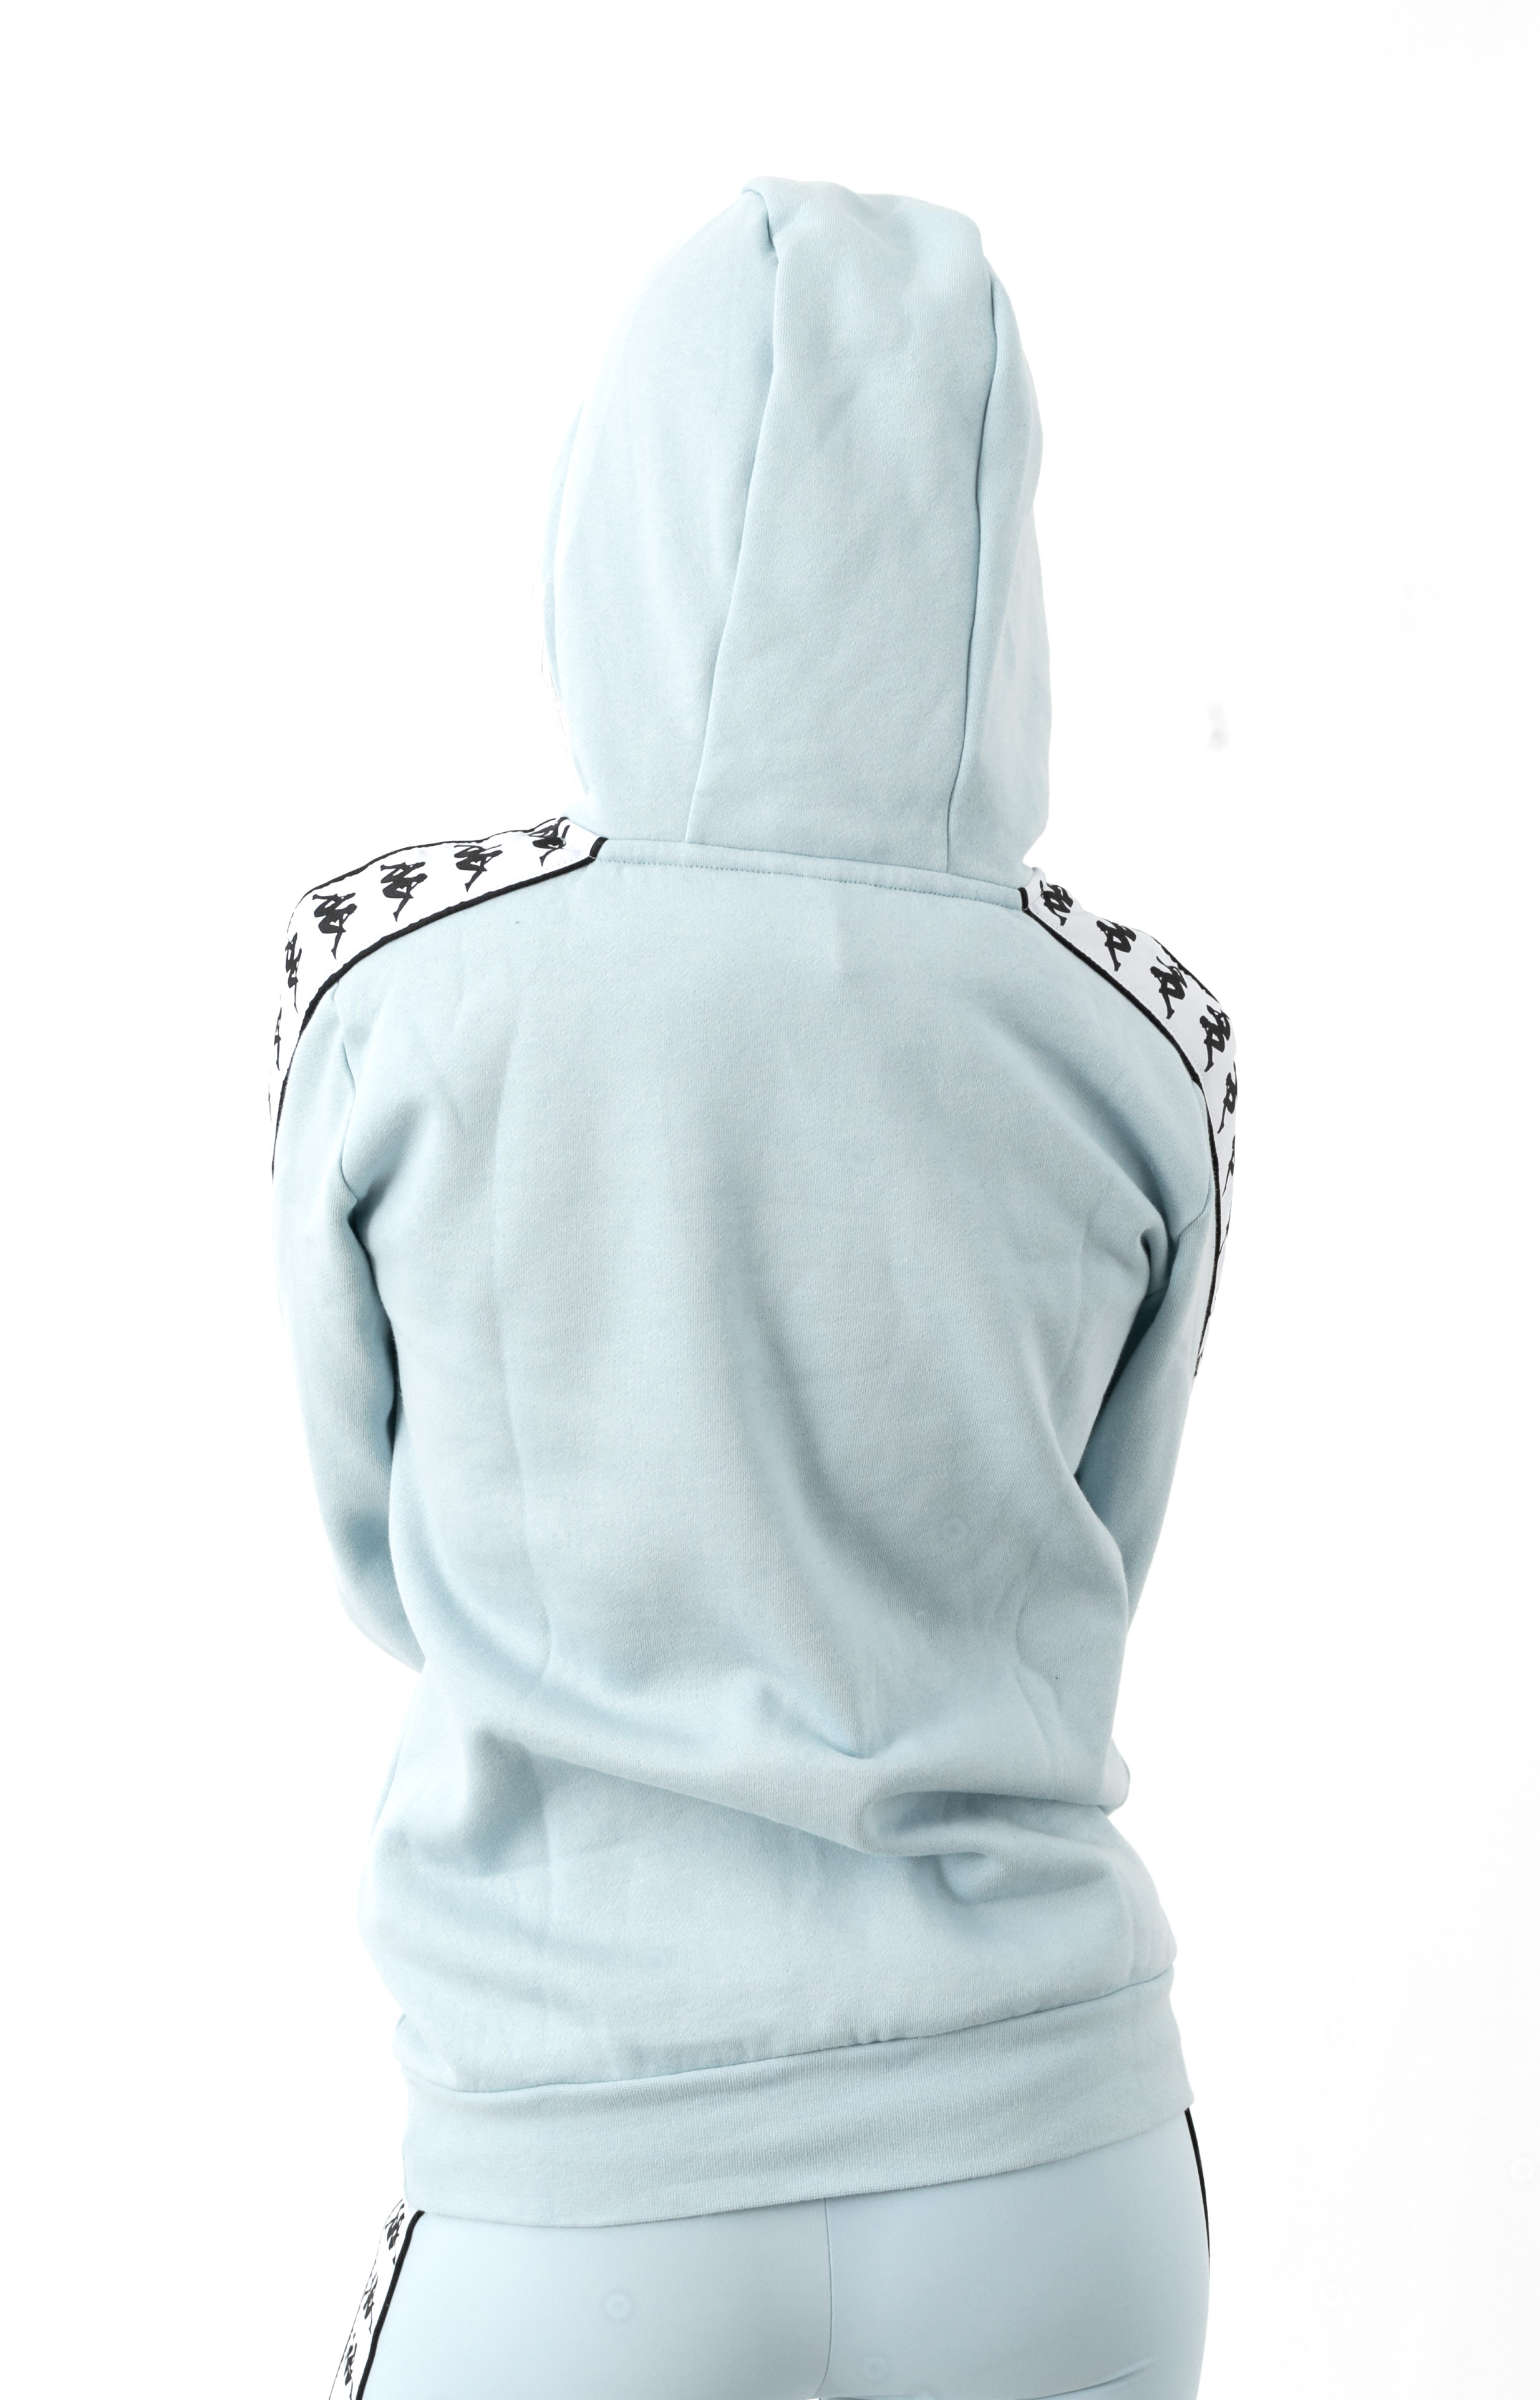 222 Banda Budy 2 Pullover Hoodie - Baby Blue/White  3